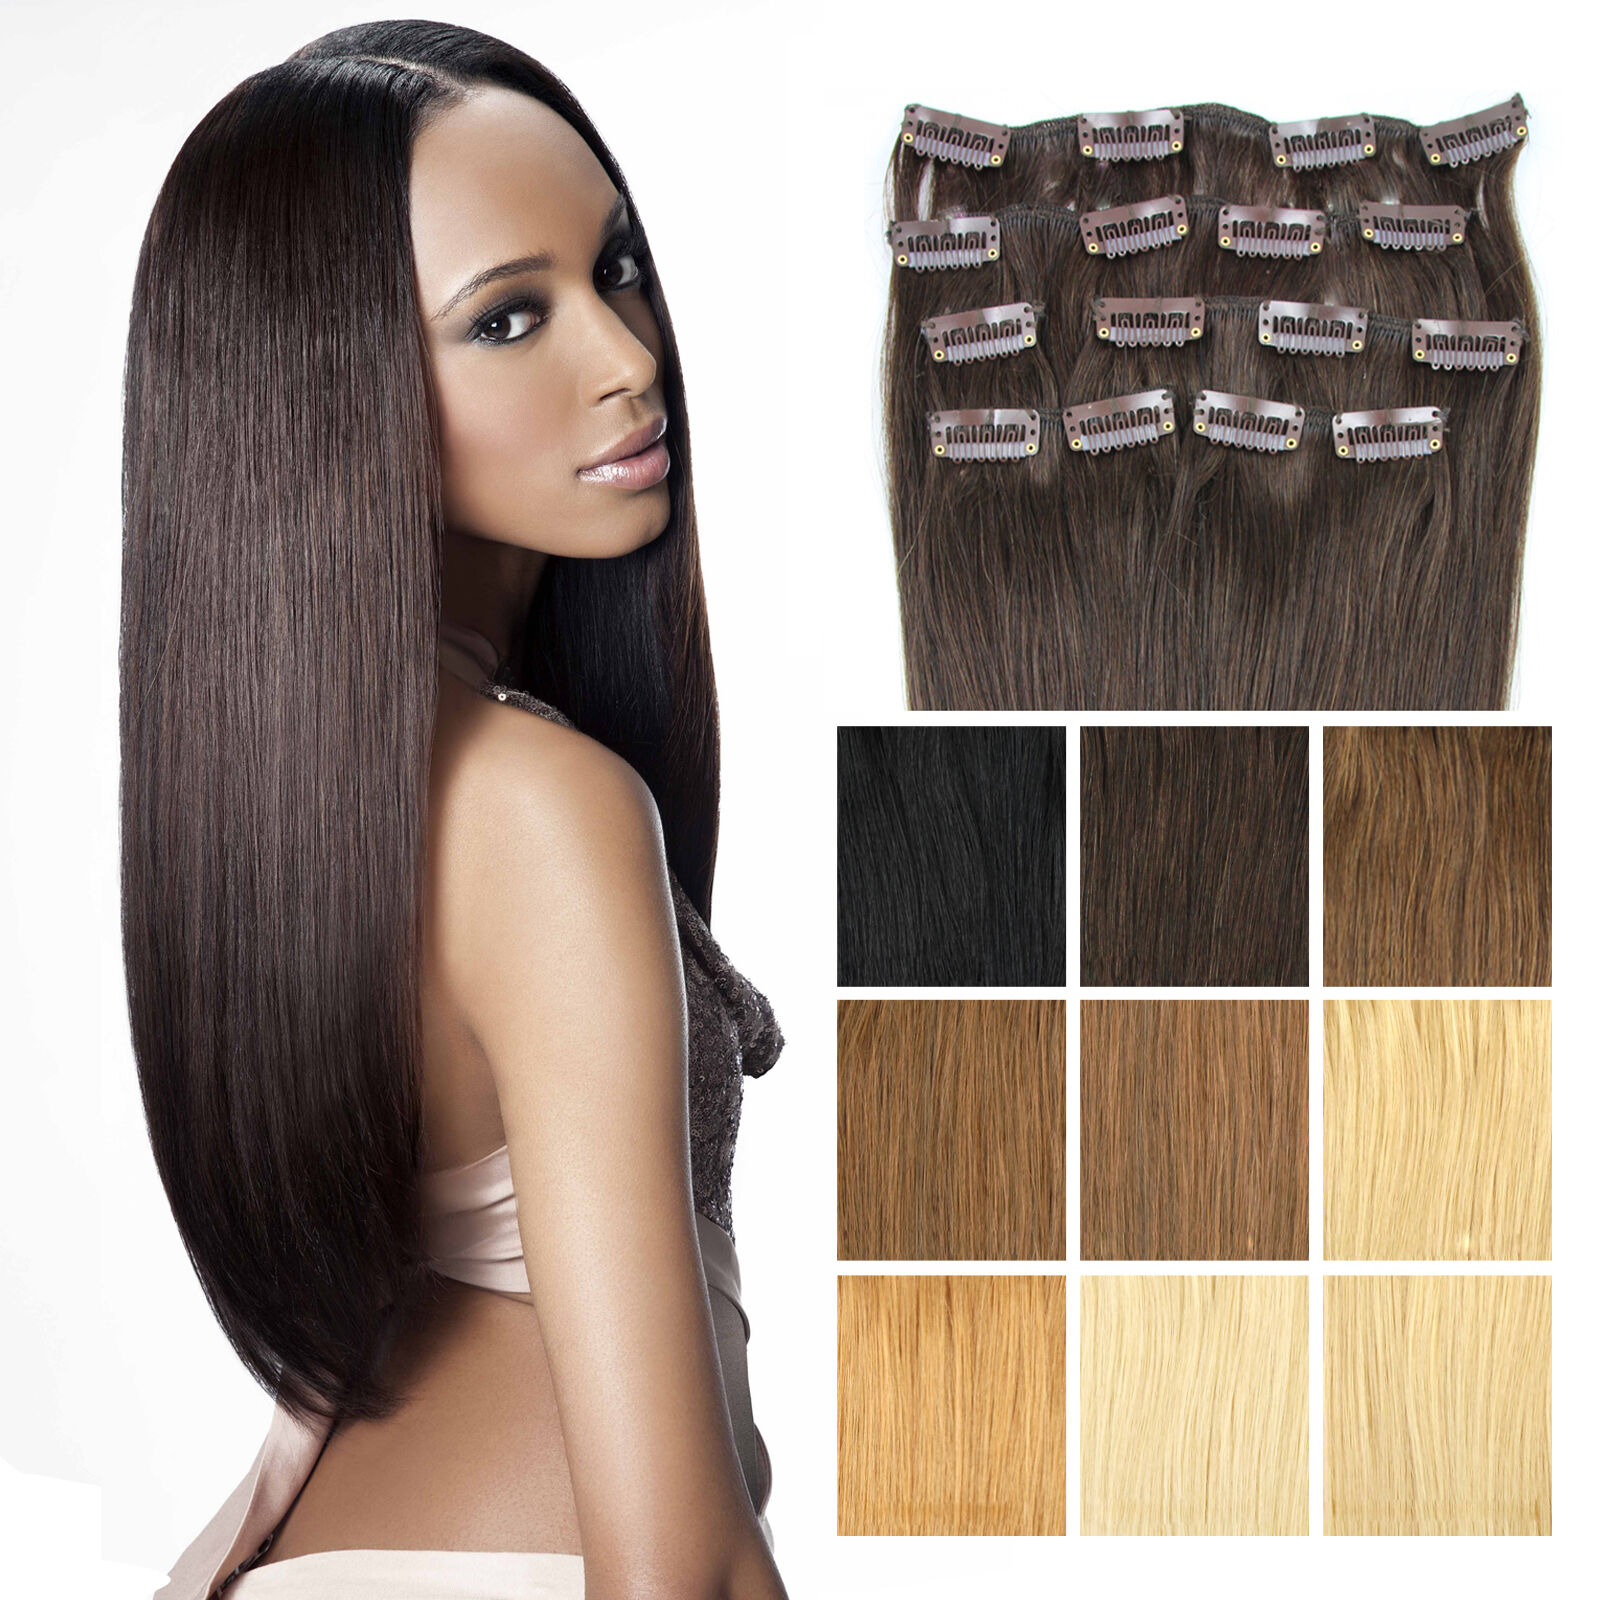 clip in extensions 7 tressen 16 clips haarverl ngerung haarverdichtung 45cm 55cm. Black Bedroom Furniture Sets. Home Design Ideas